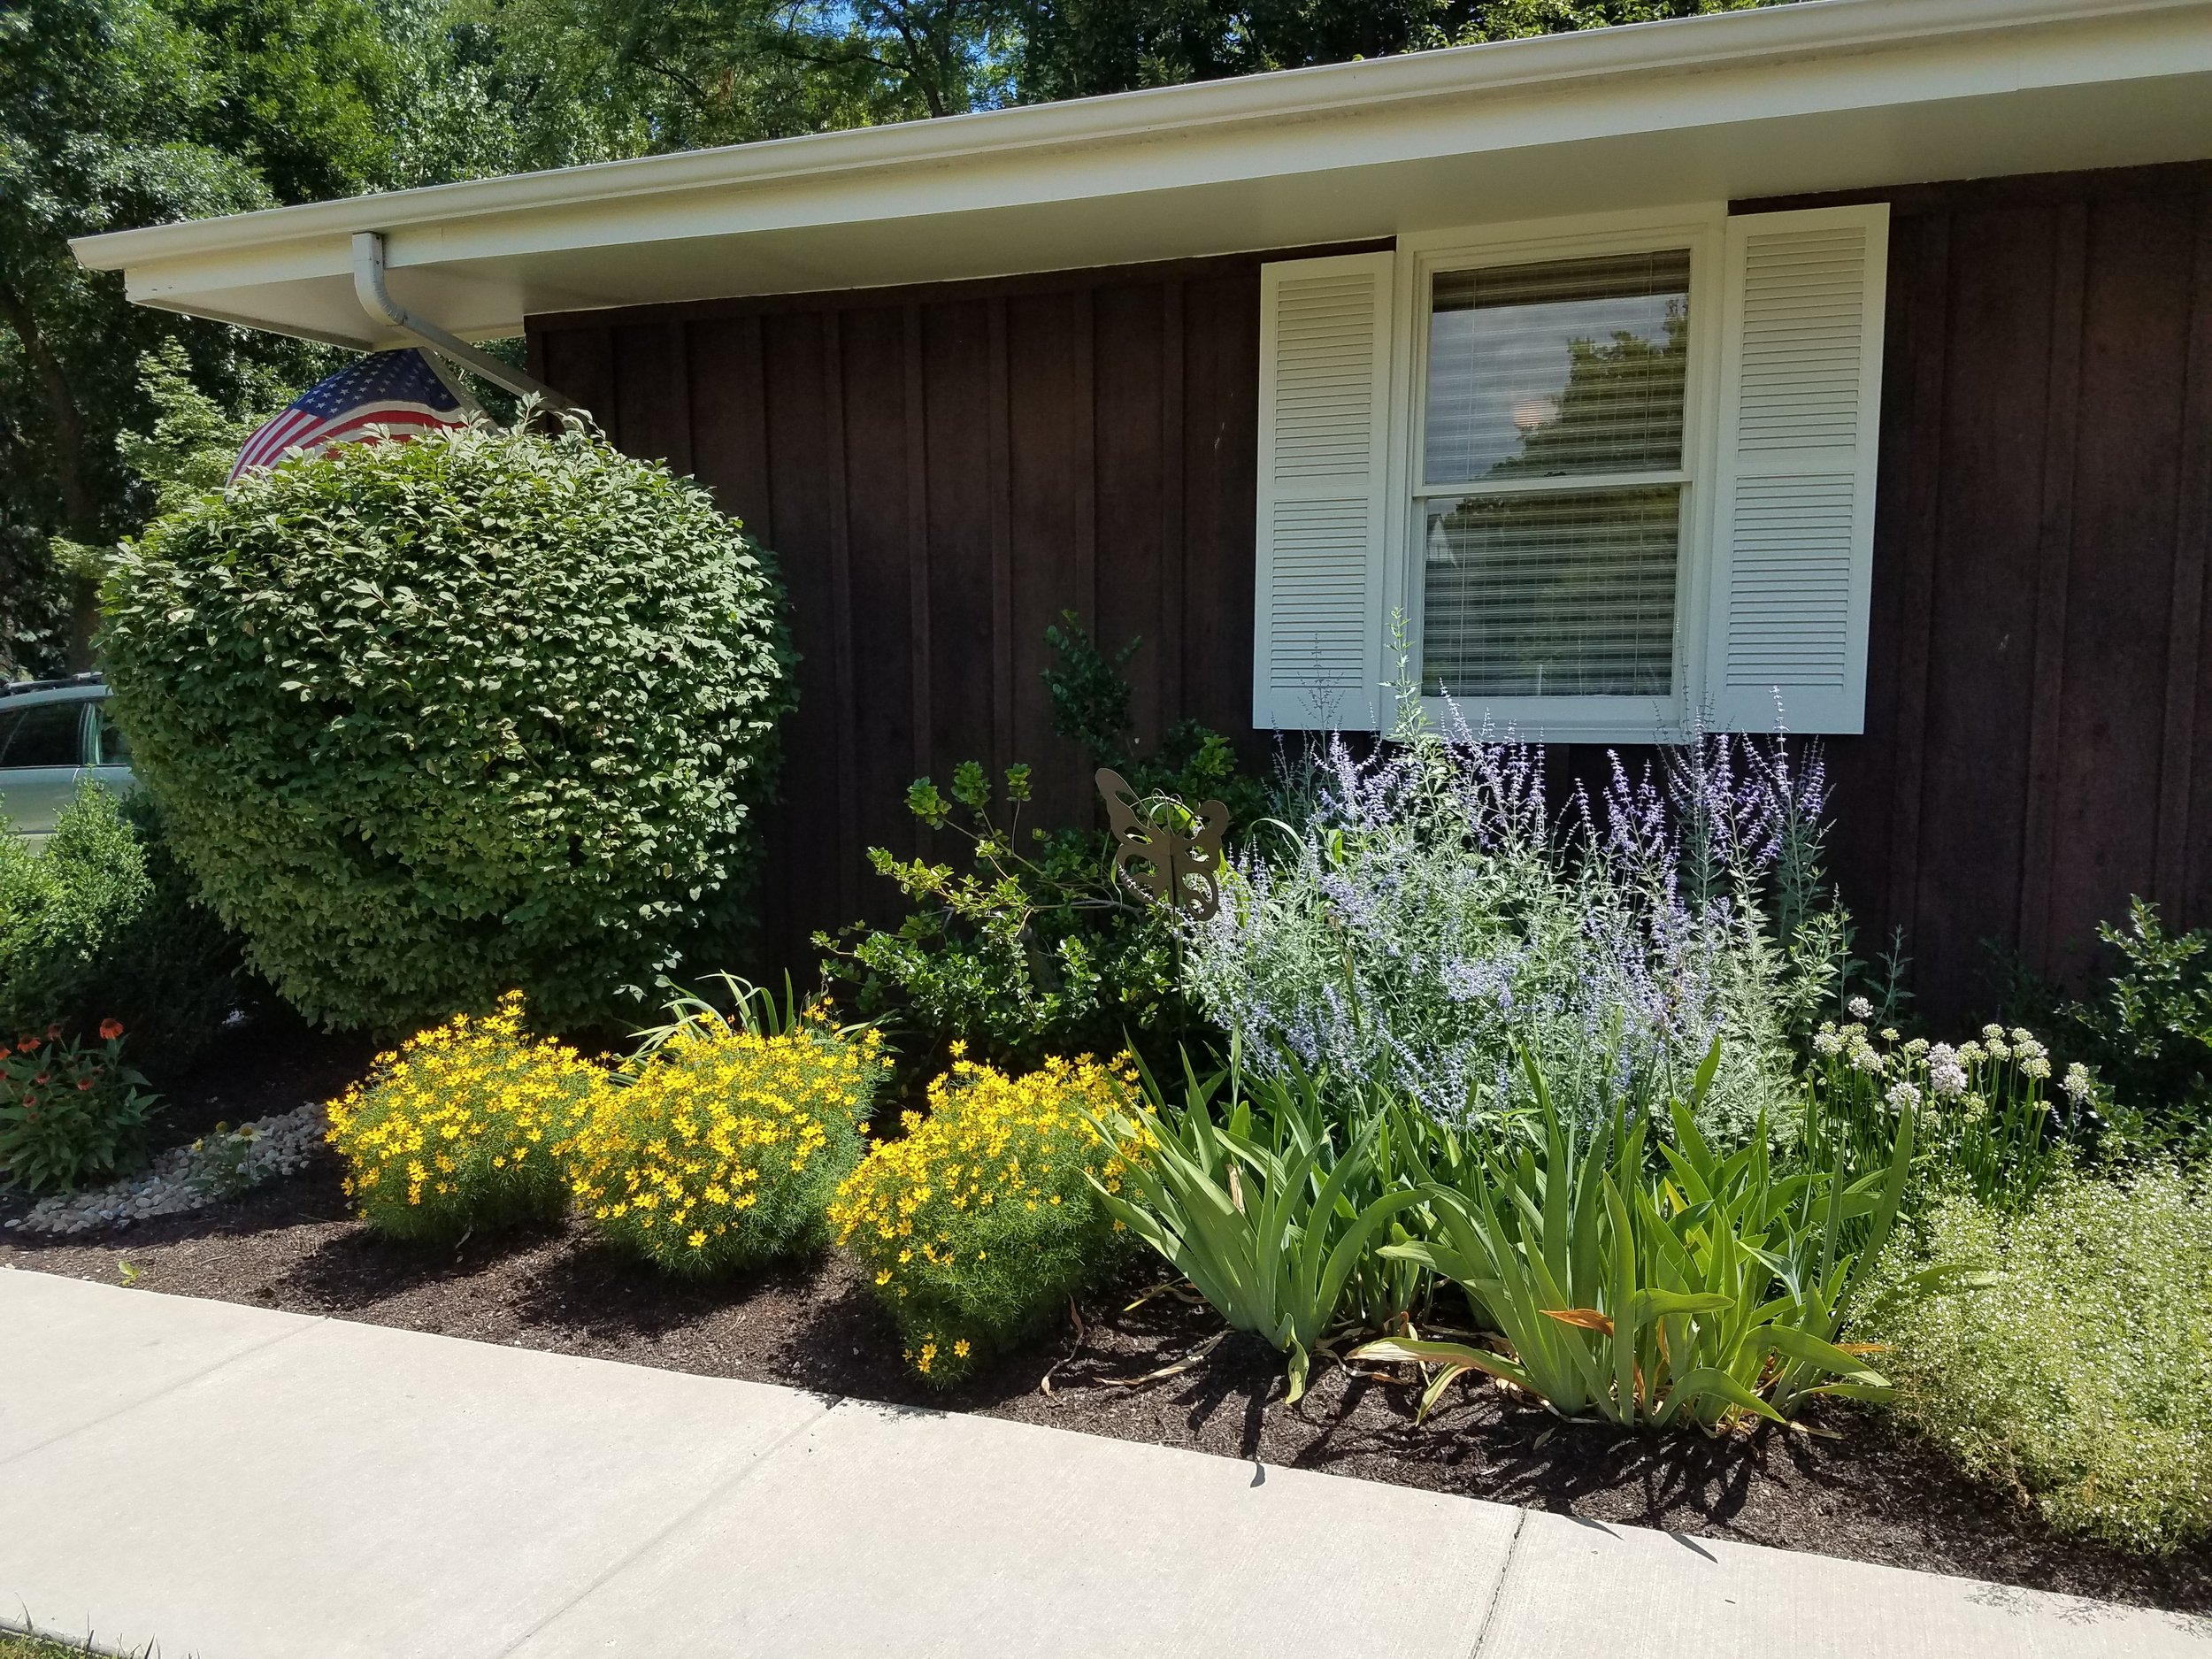 Try these! - Native plants for color and variety